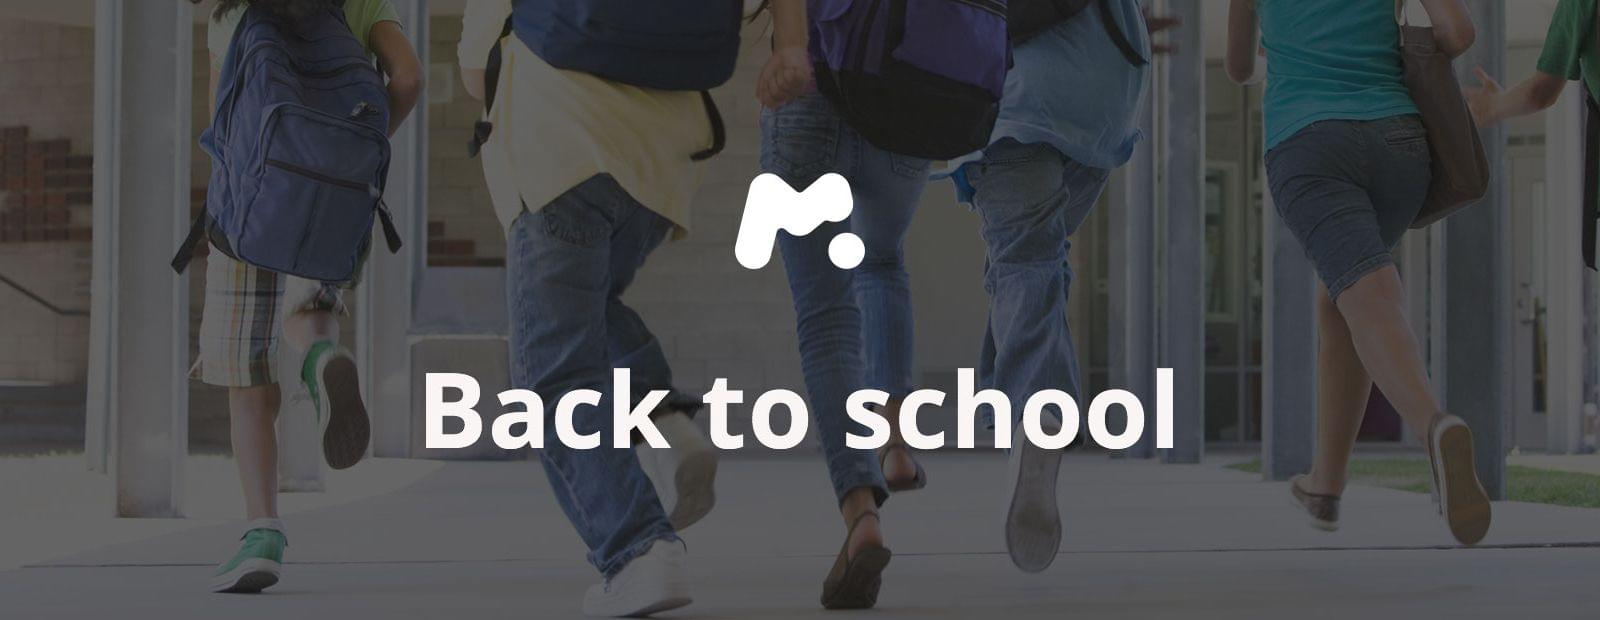 Back to school can be easy with a parental control app